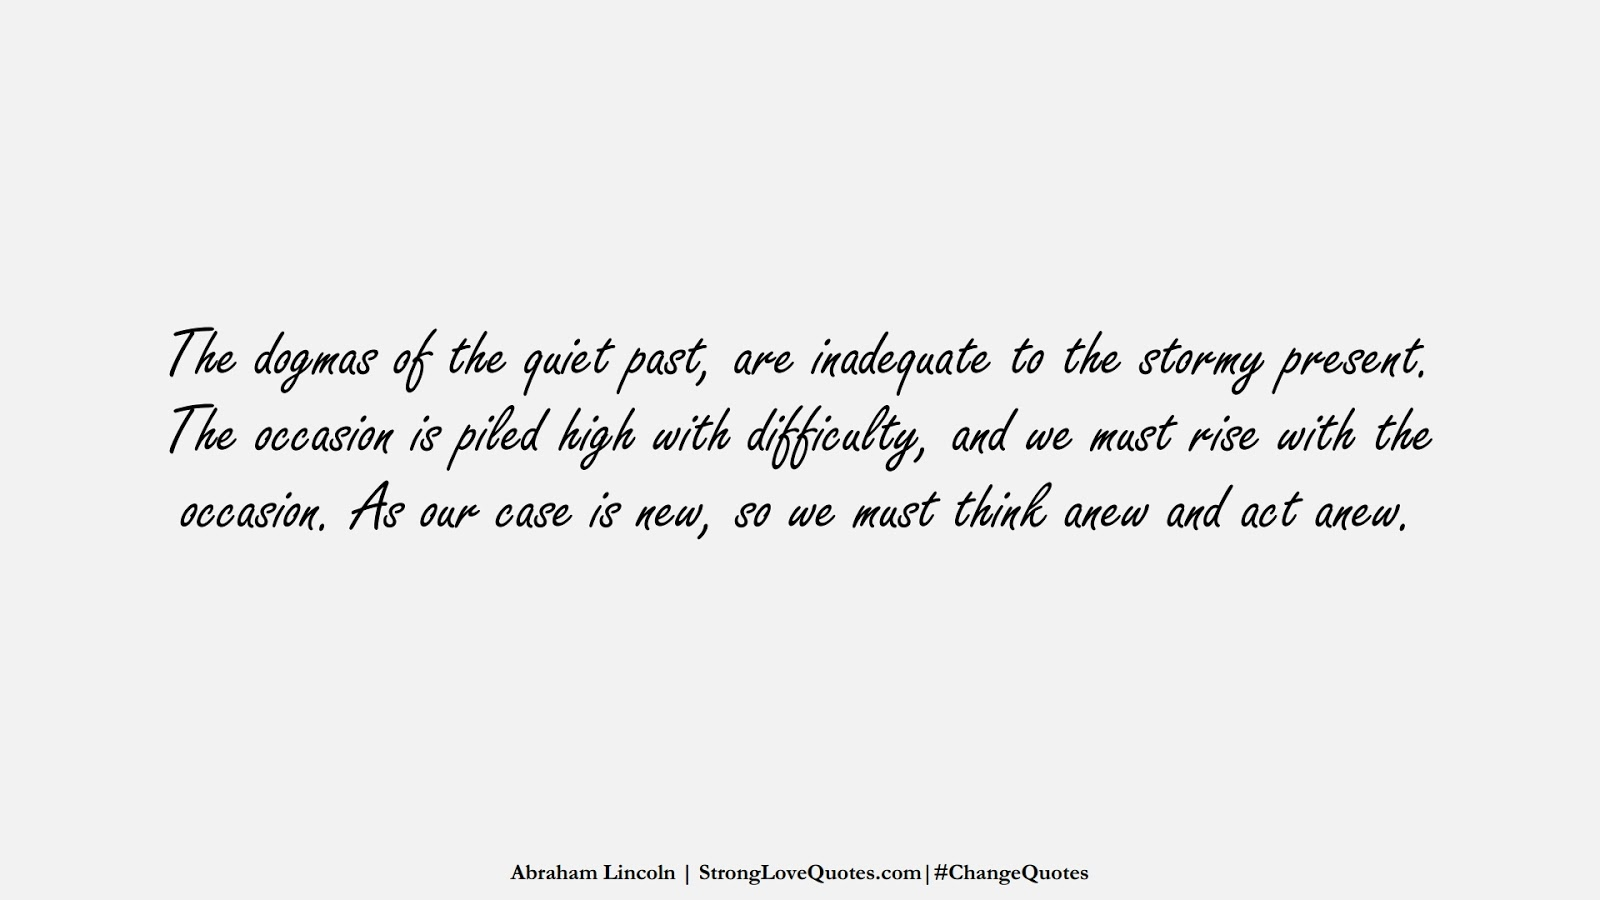 The dogmas of the quiet past, are inadequate to the stormy present. The occasion is piled high with difficulty, and we must rise with the occasion. As our case is new, so we must think anew and act anew. (Abraham Lincoln);  #ChangeQuotes